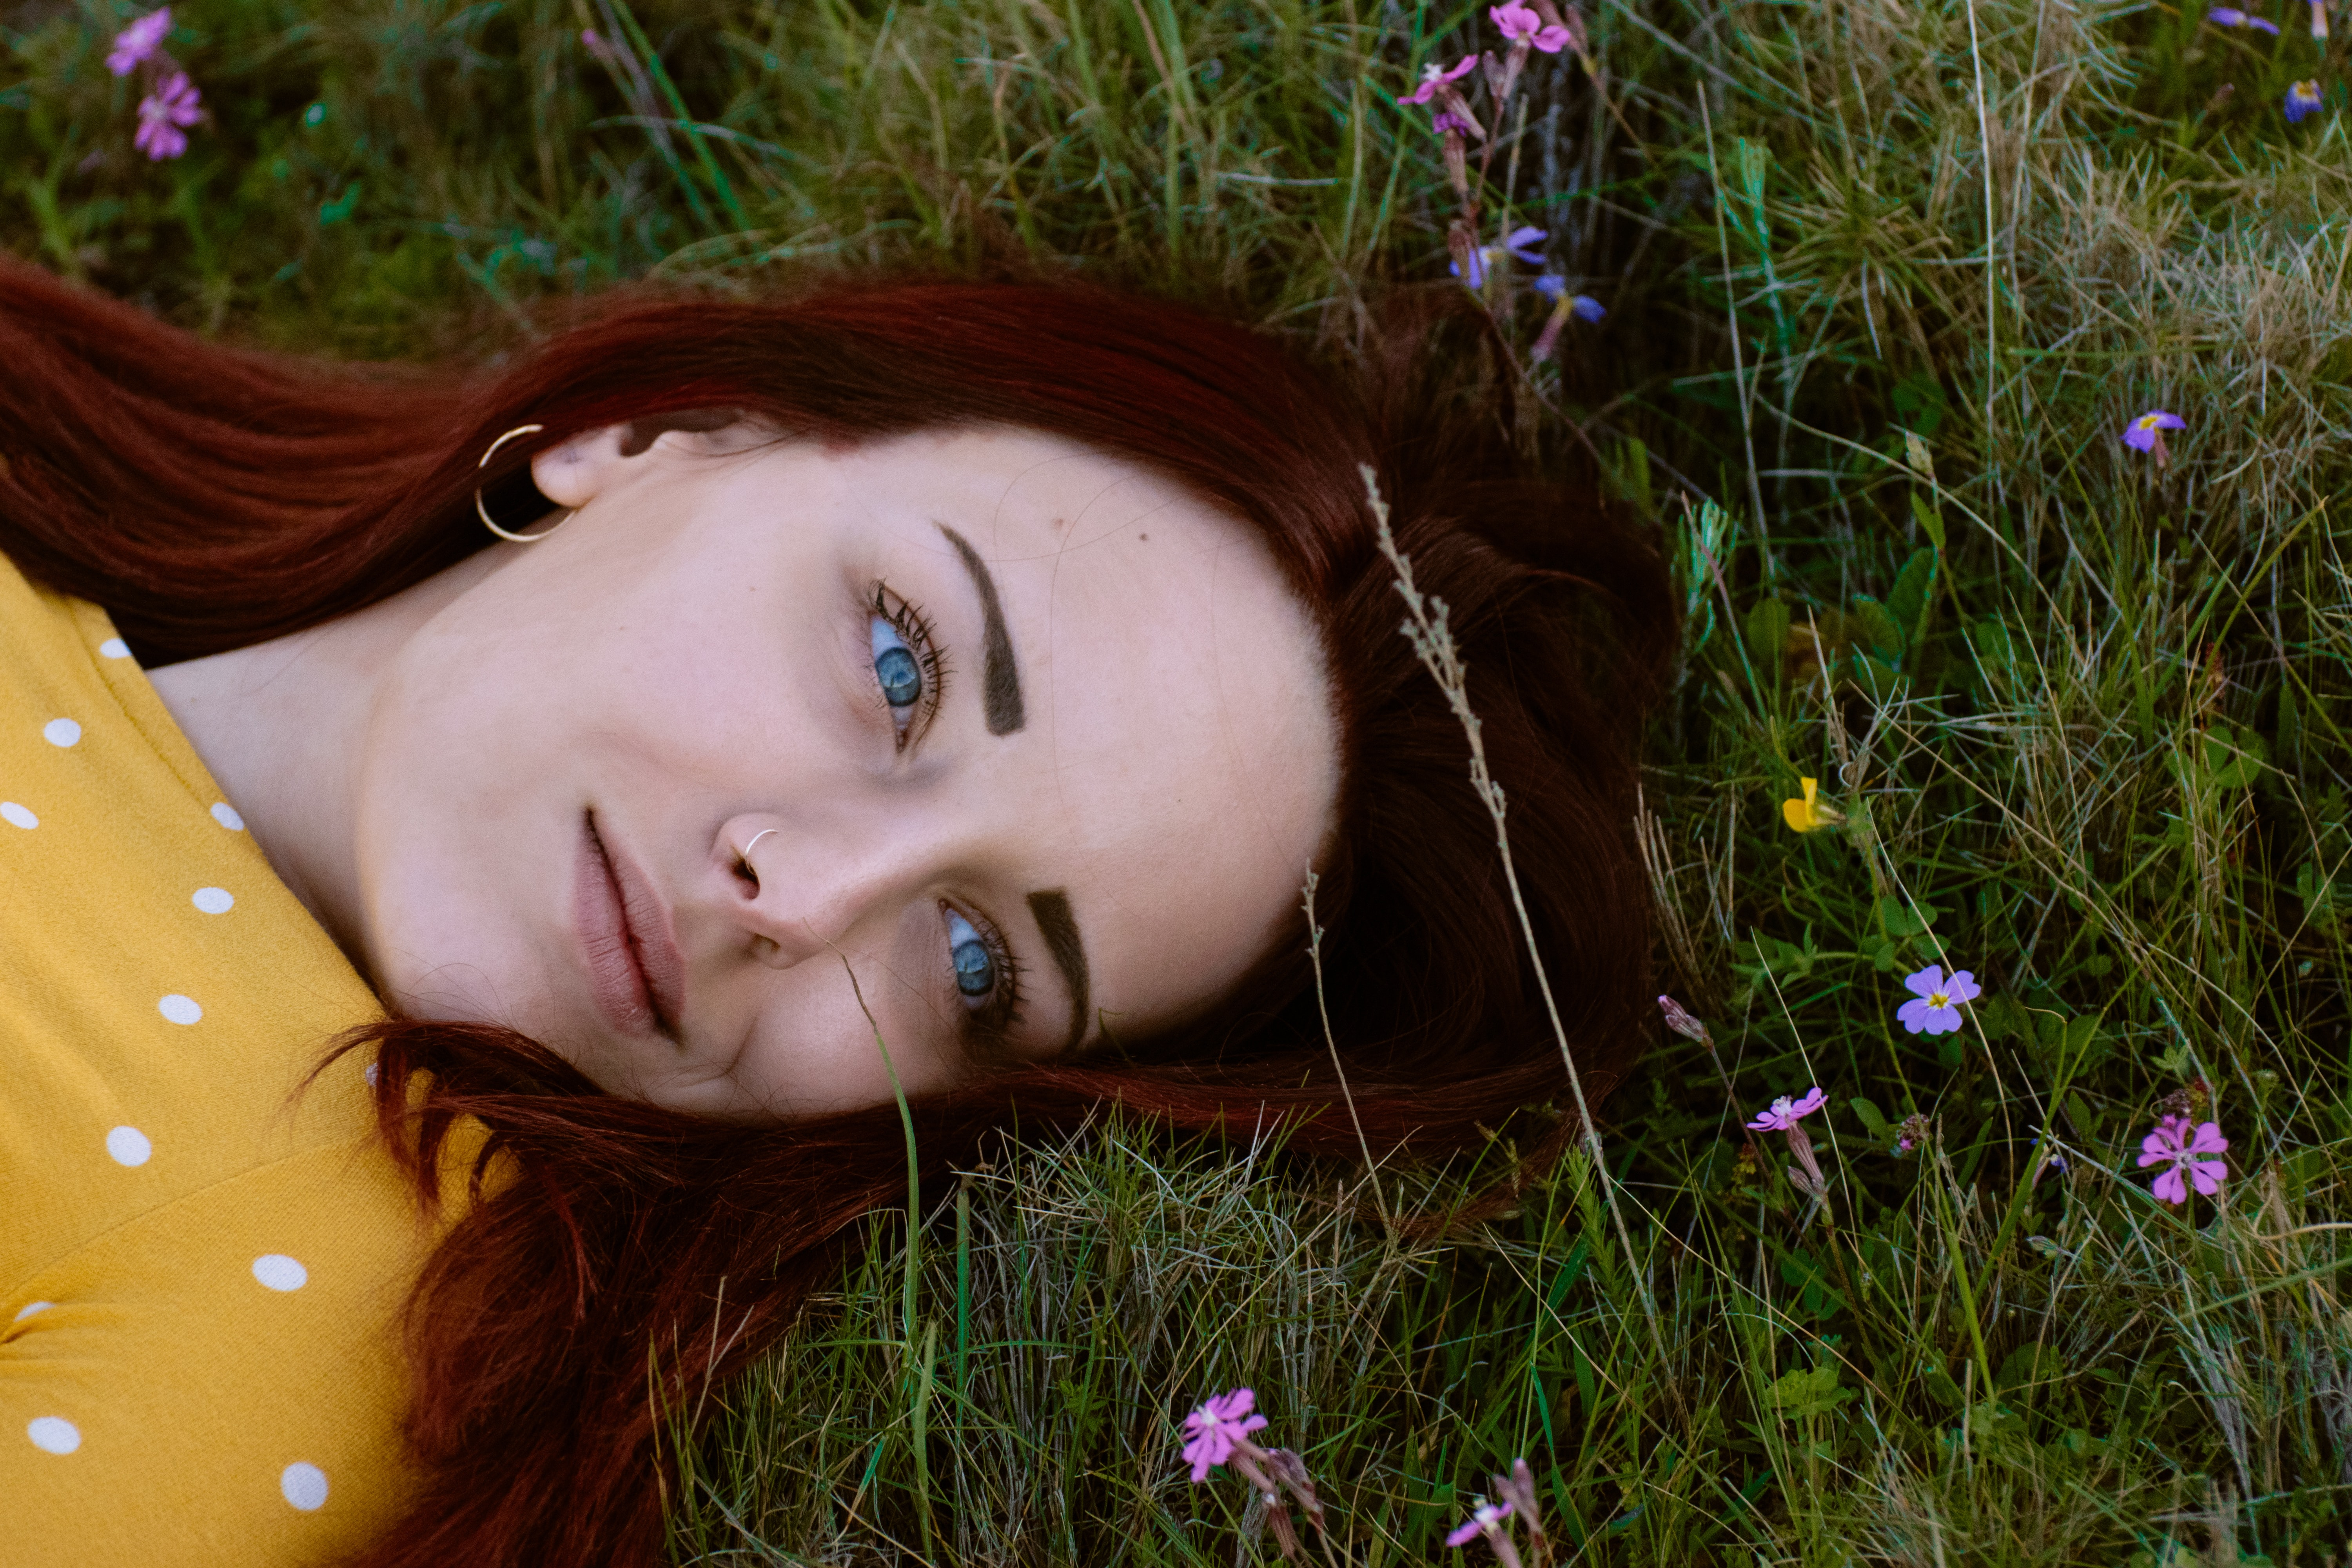 woman in brown and white polka-dot top lying in green grass during daytime